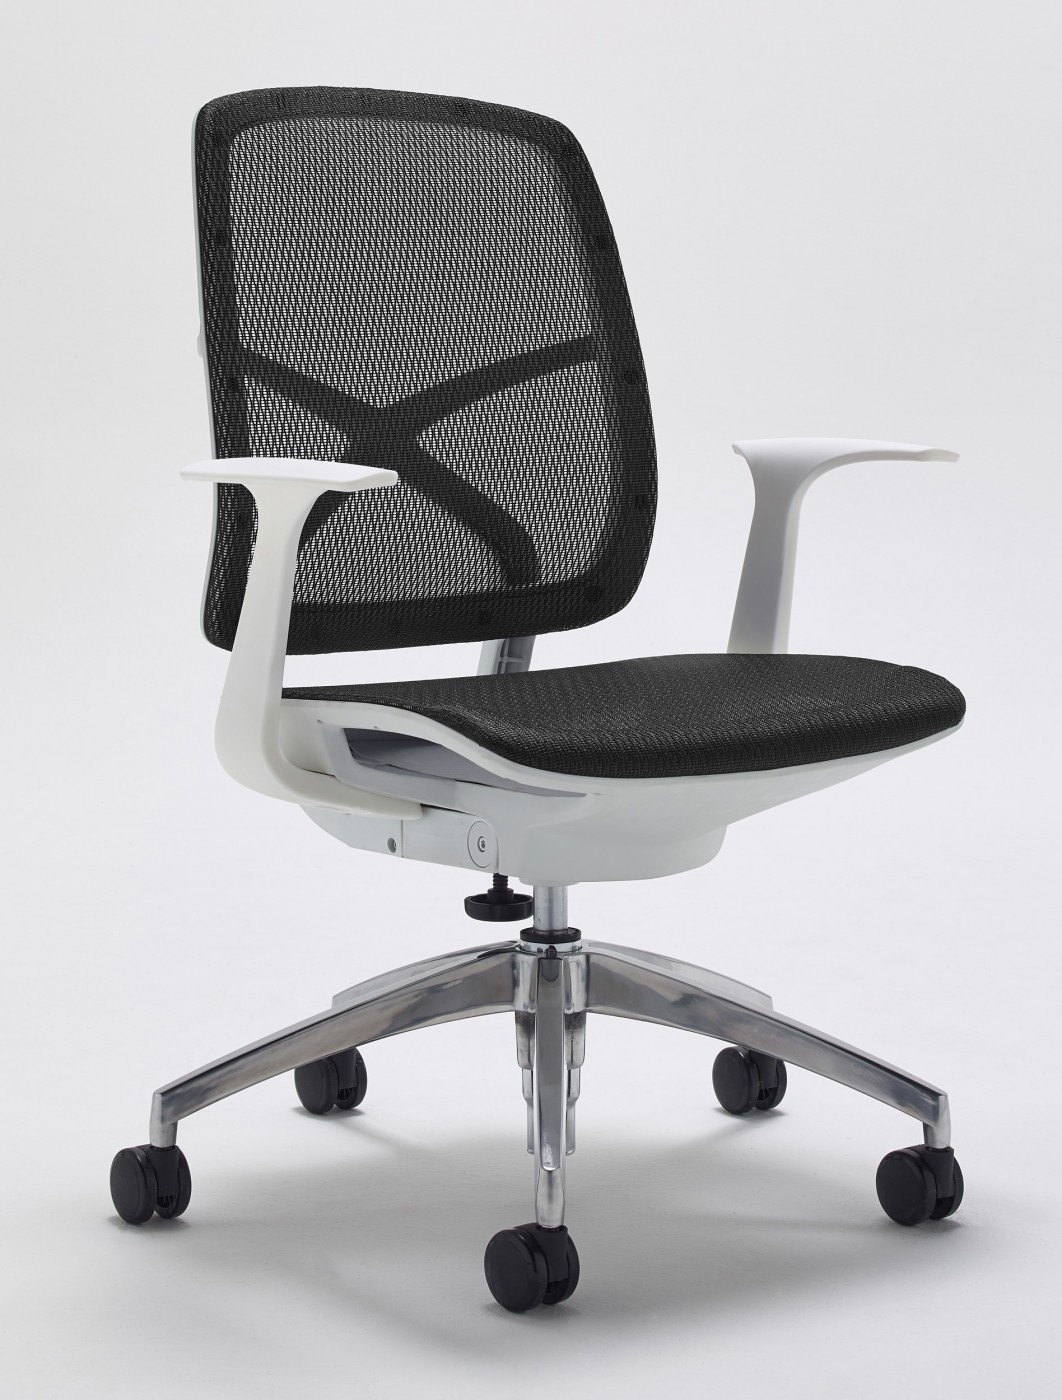 office chair uk disposable banquet covers chairs zico mesh ch0799 121 furniture